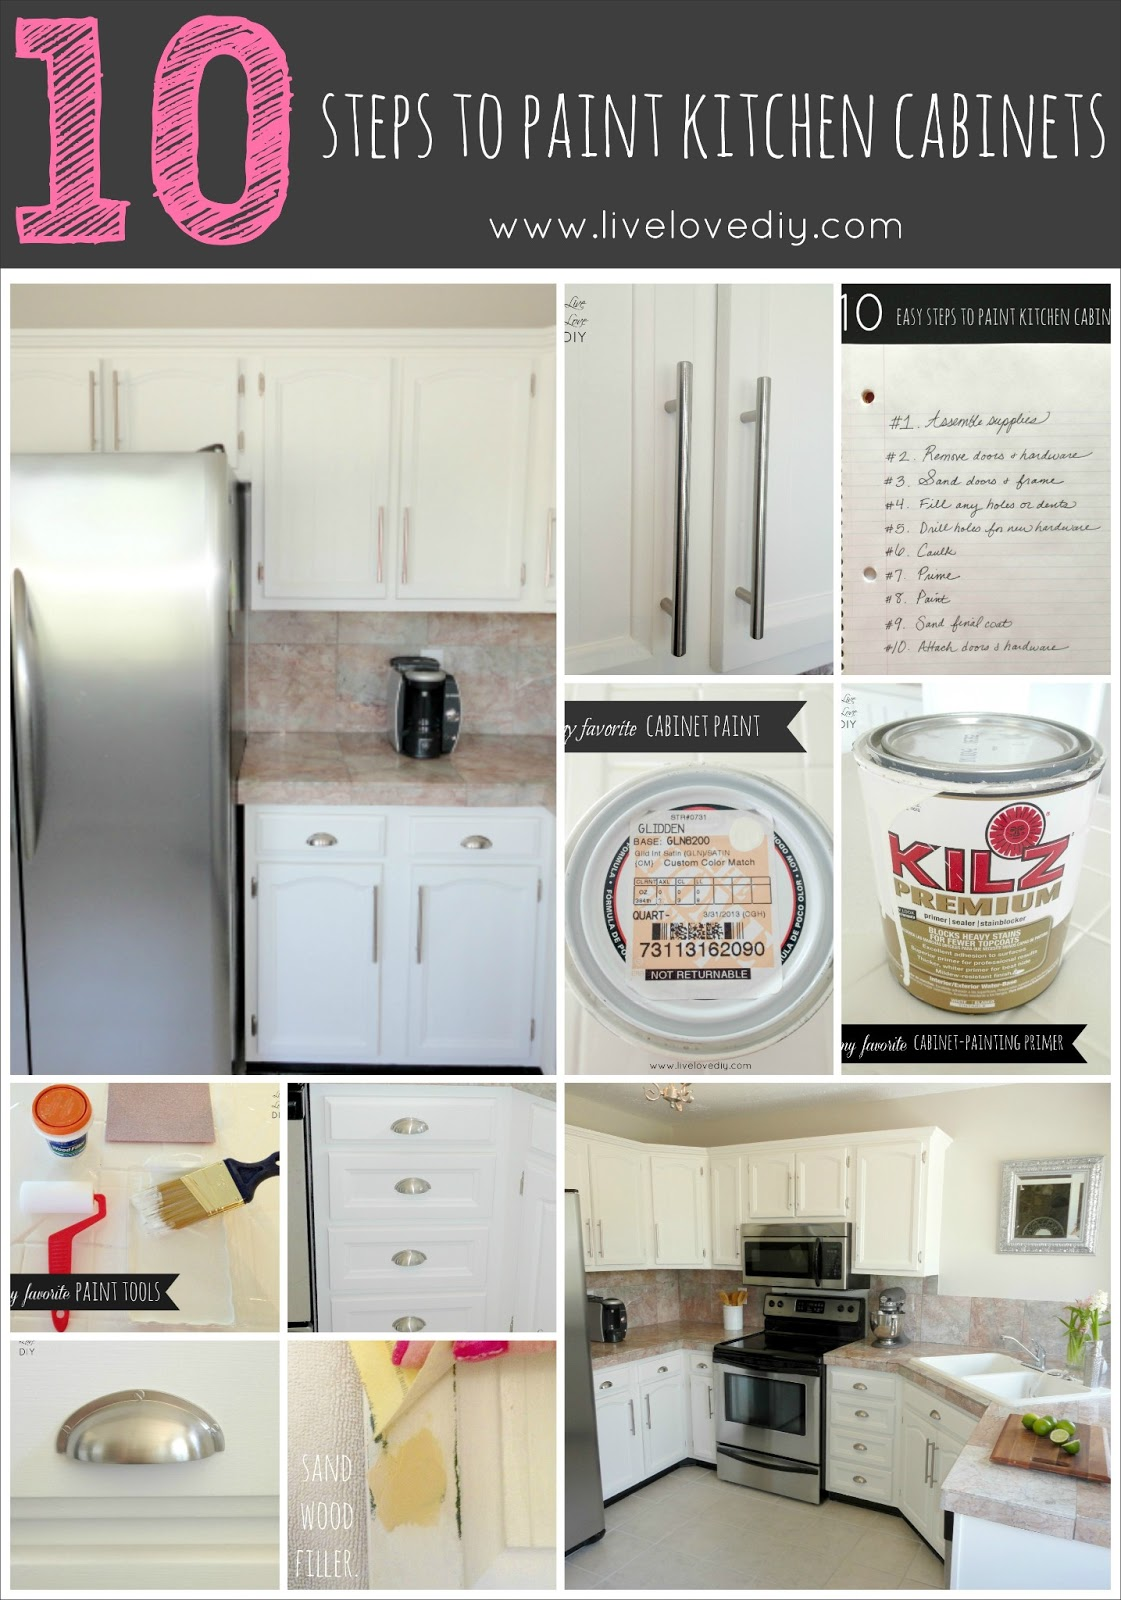 10 easy steps to paint kitchen cabinets refinishing kitchen cabinets How To Paint Kitchen Cabinets in 10 Easy Steps